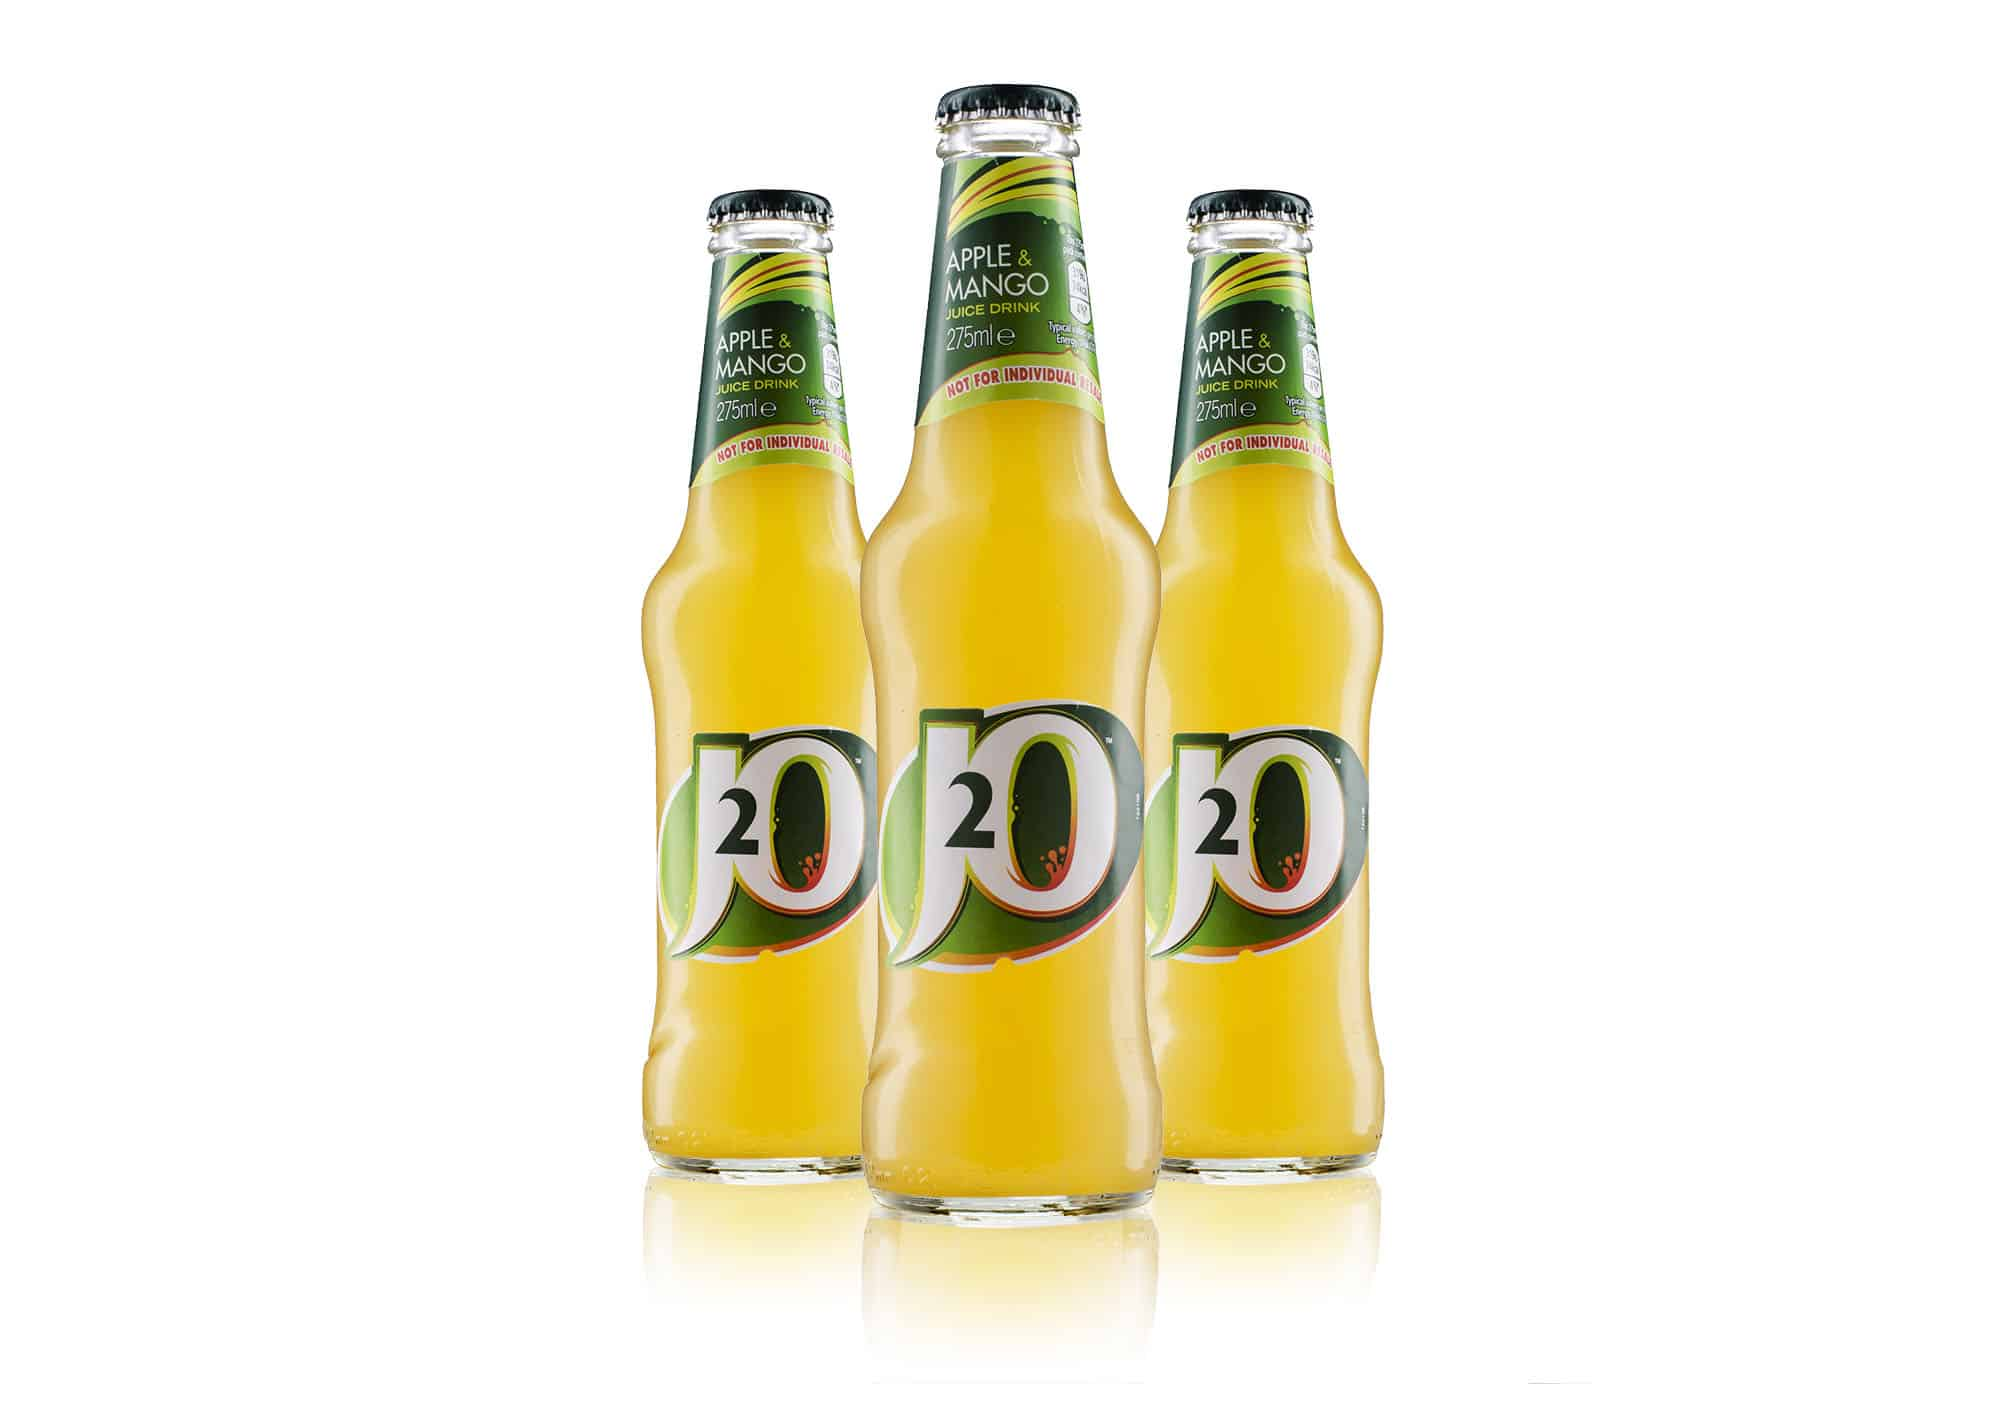 Ian Knaggs Commercial Packshot Photographer - J20 Drink Bottles